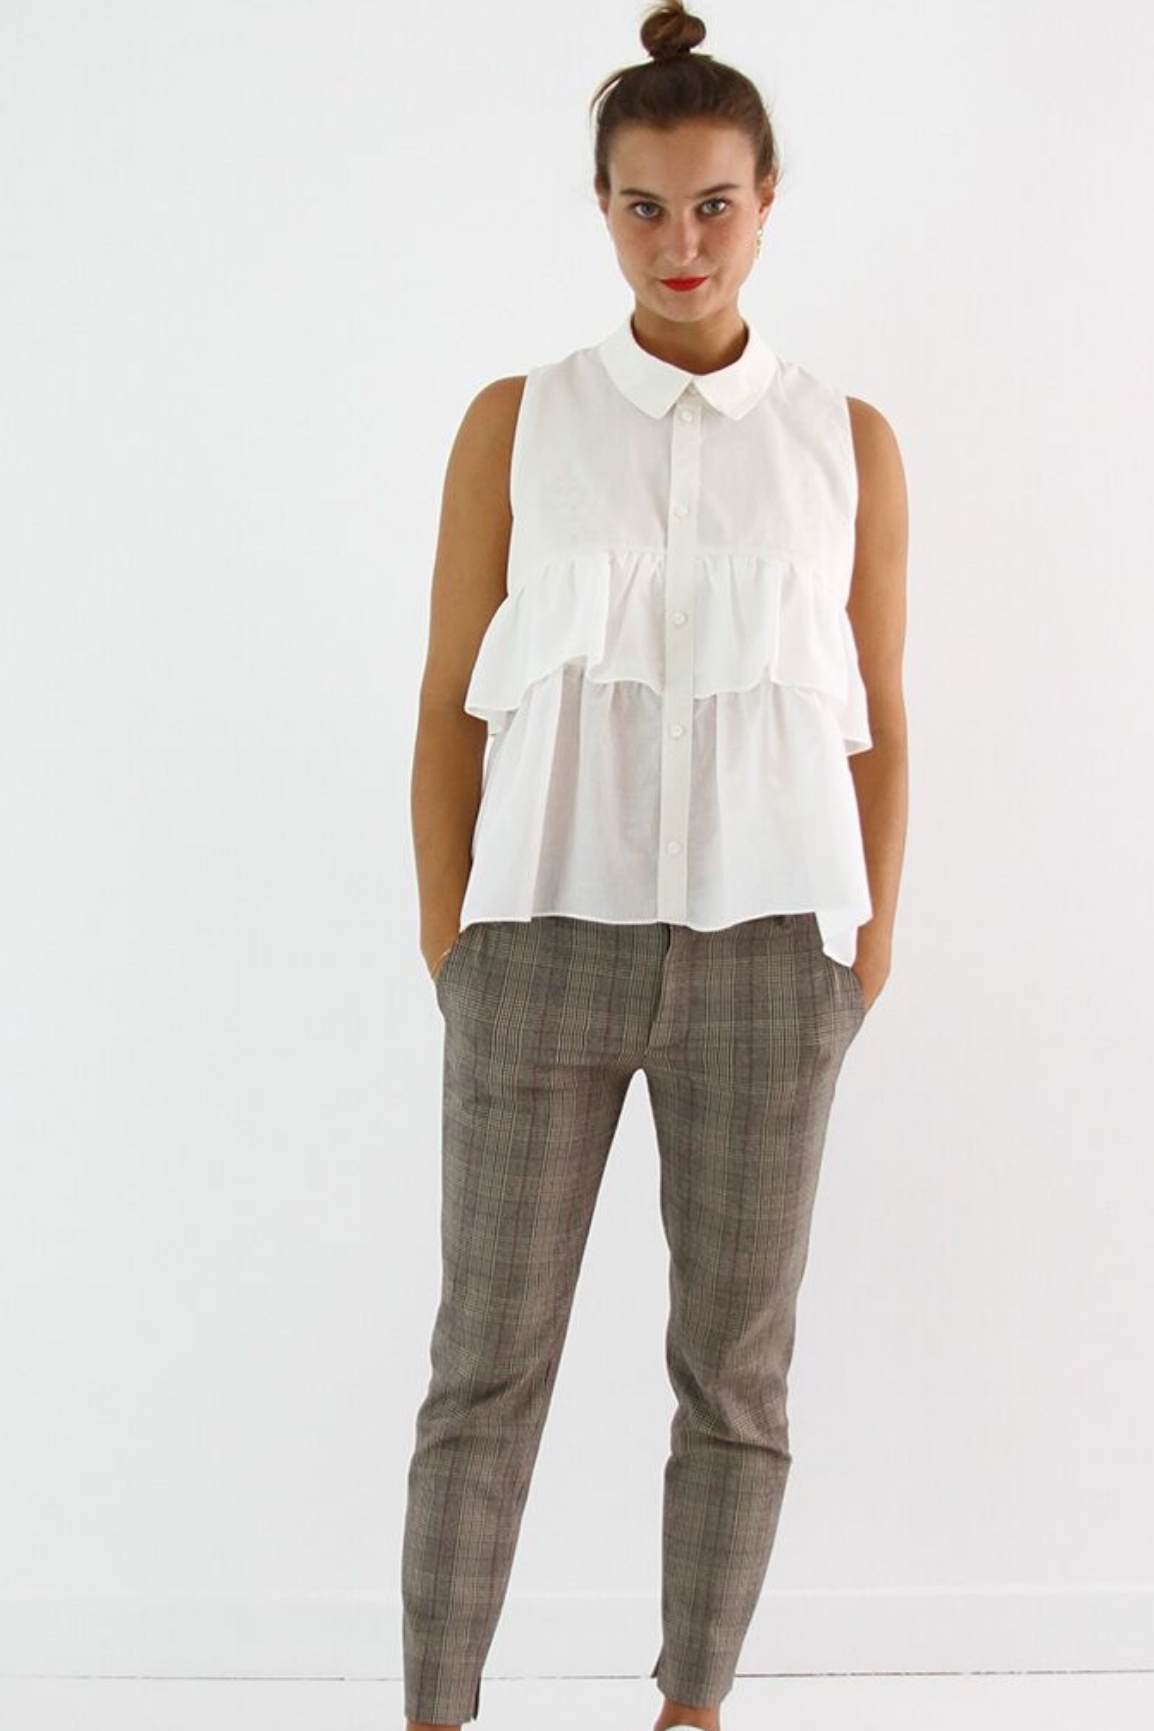 Magdala shirt from I AM Patterns